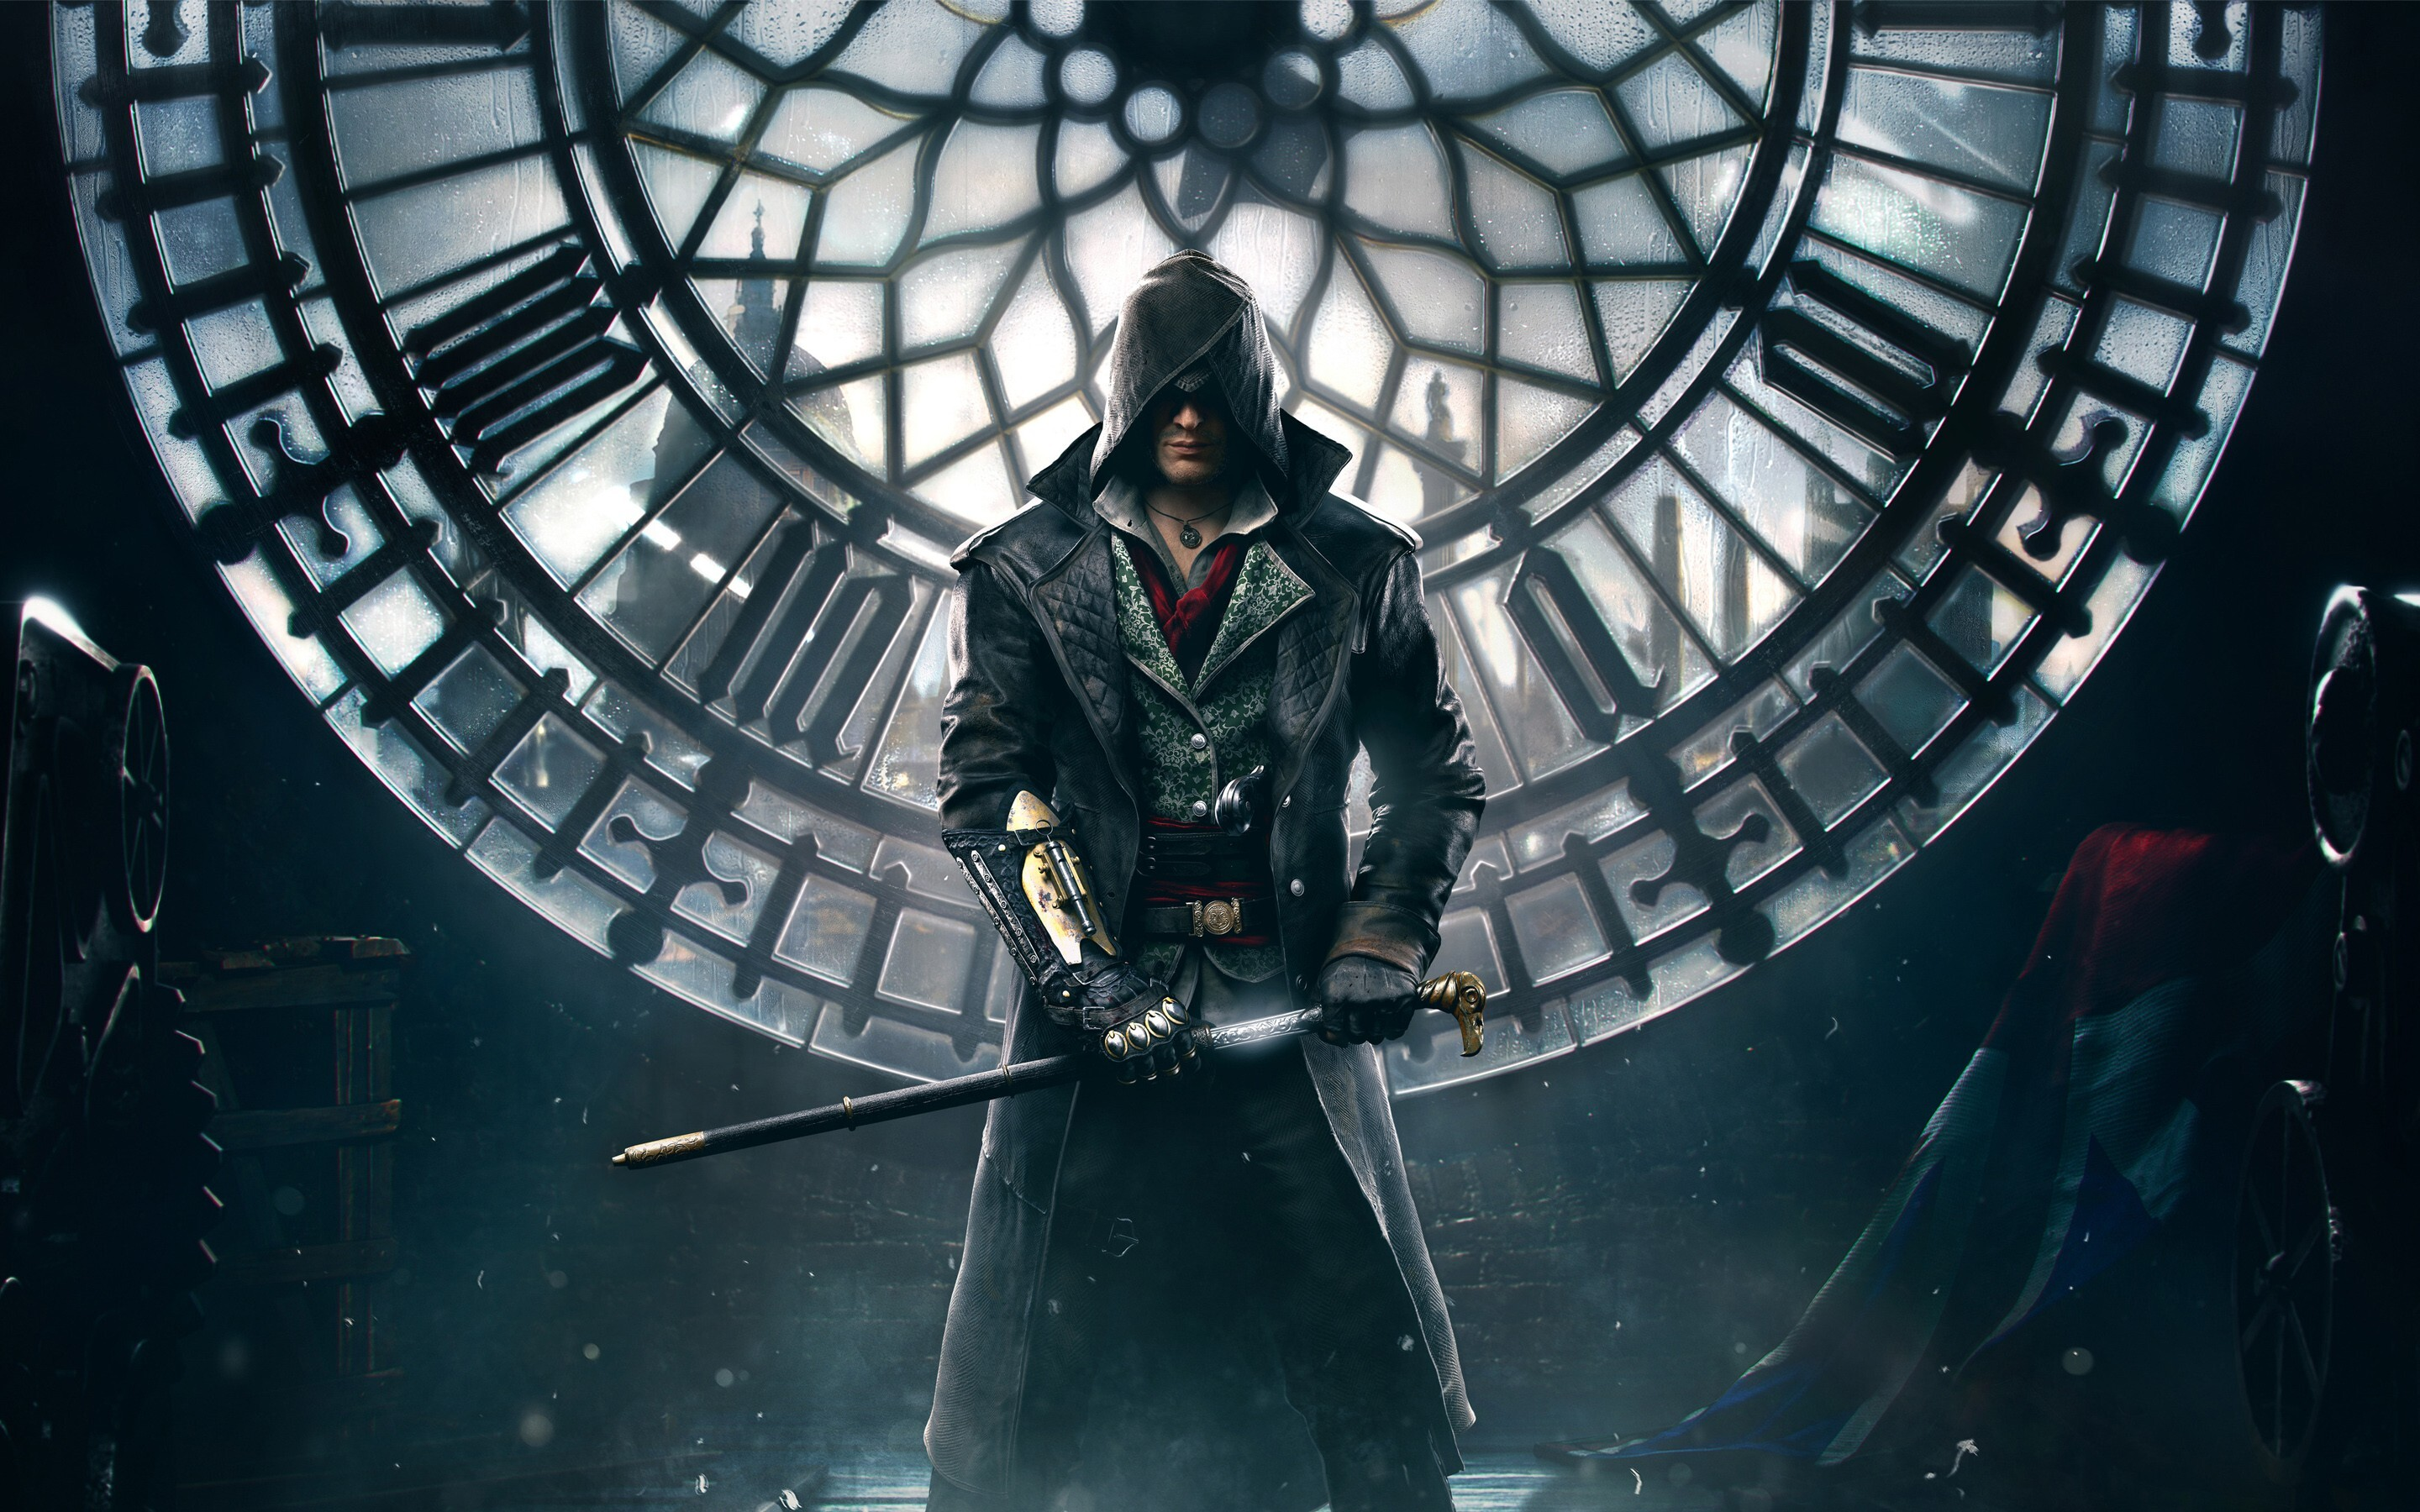 2880x1800 assassins creed syndicate game 3 macbook pro retina hd 4k